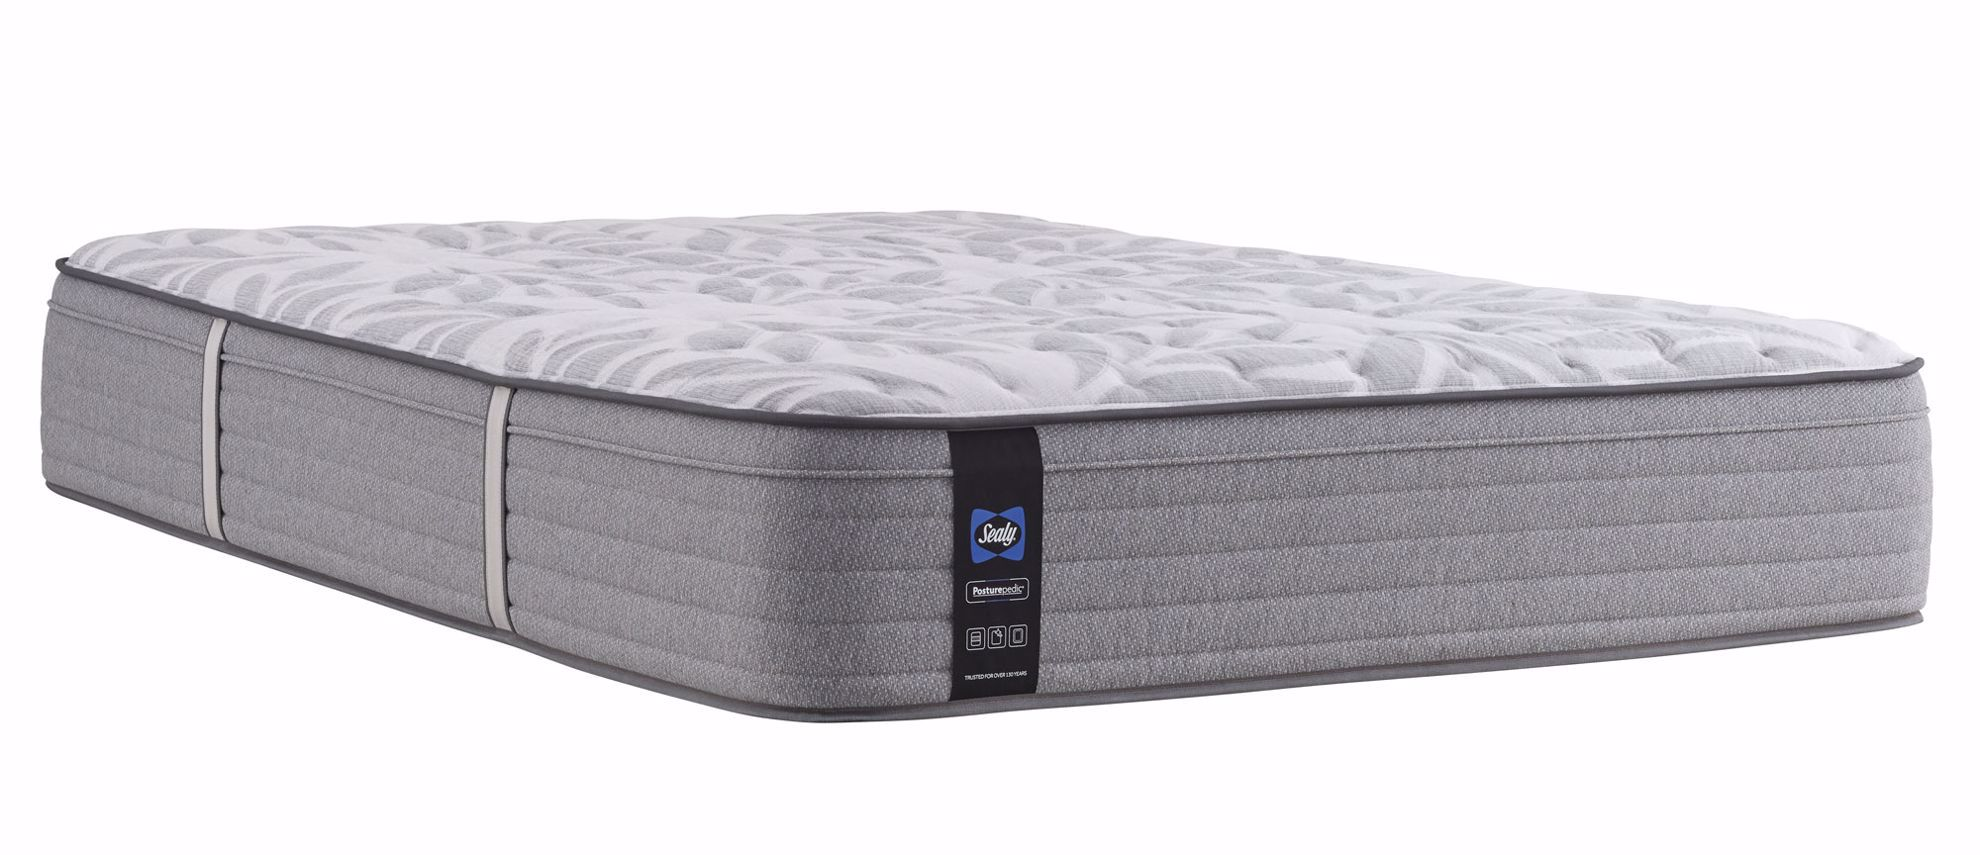 Picture of Posturpedic Silver Pine Medium Faux Euro Pillowtop Twin Mattress